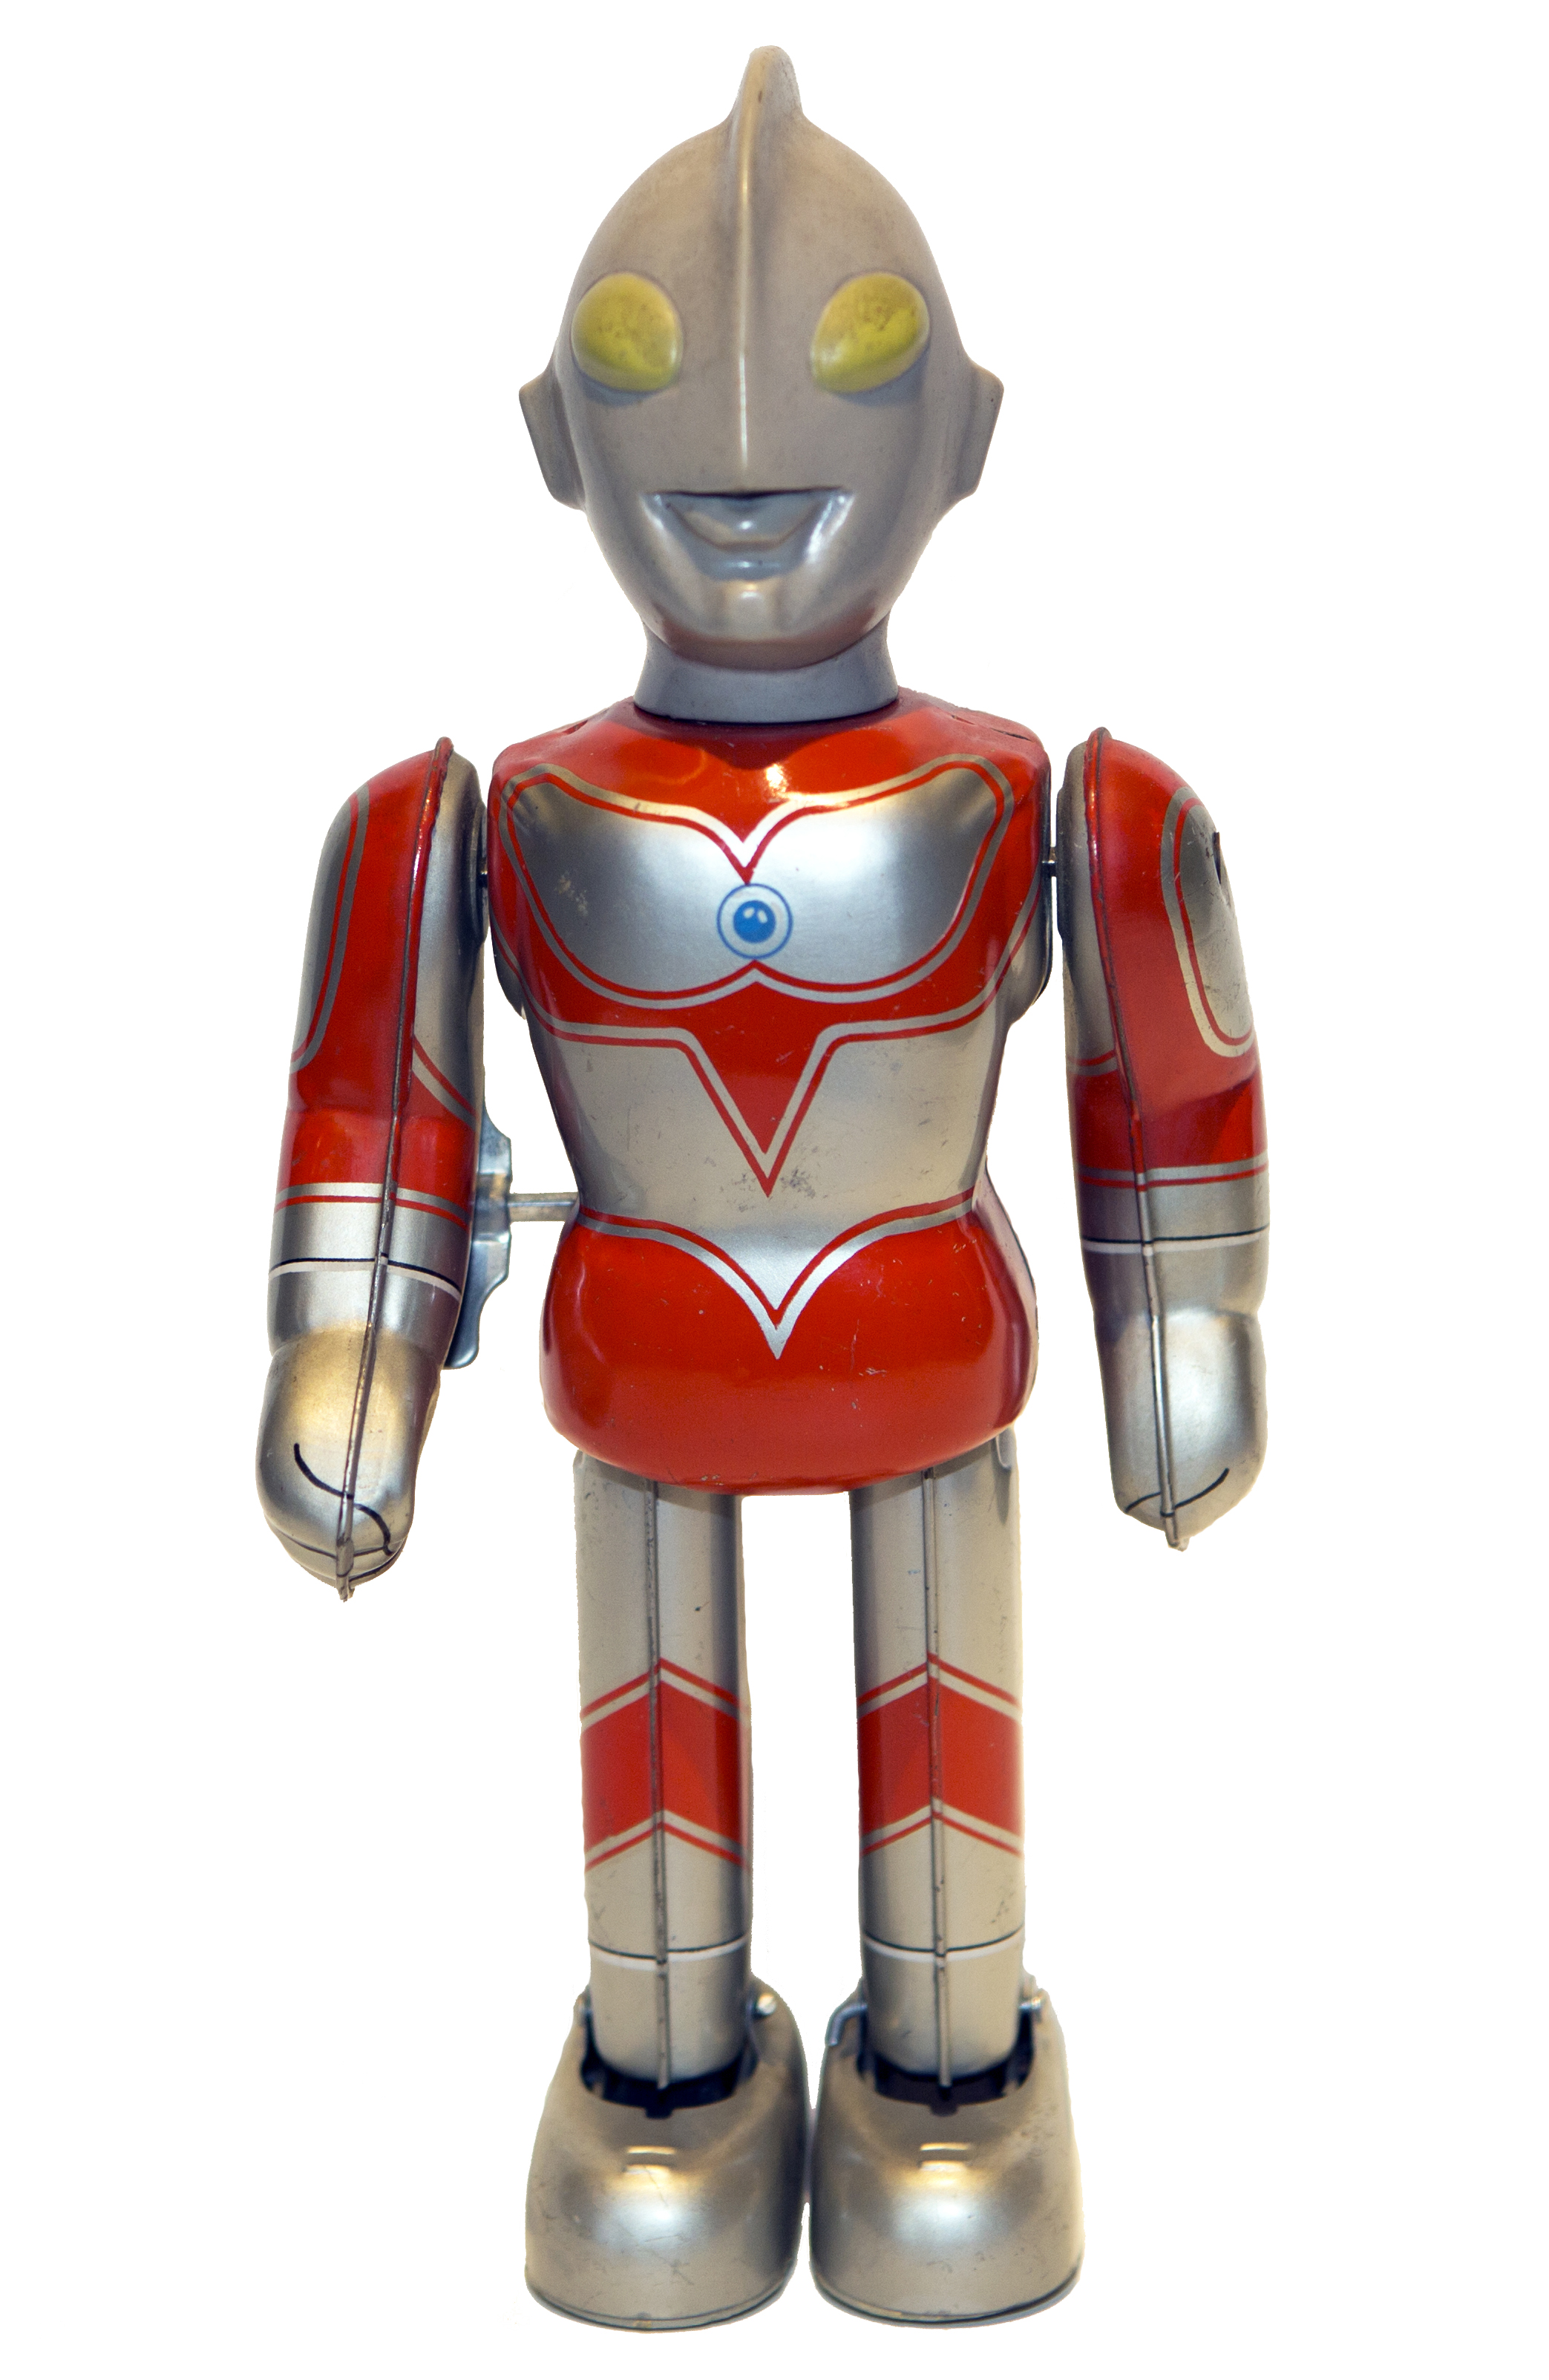 ULTRAMAN SHIN WIND-UP